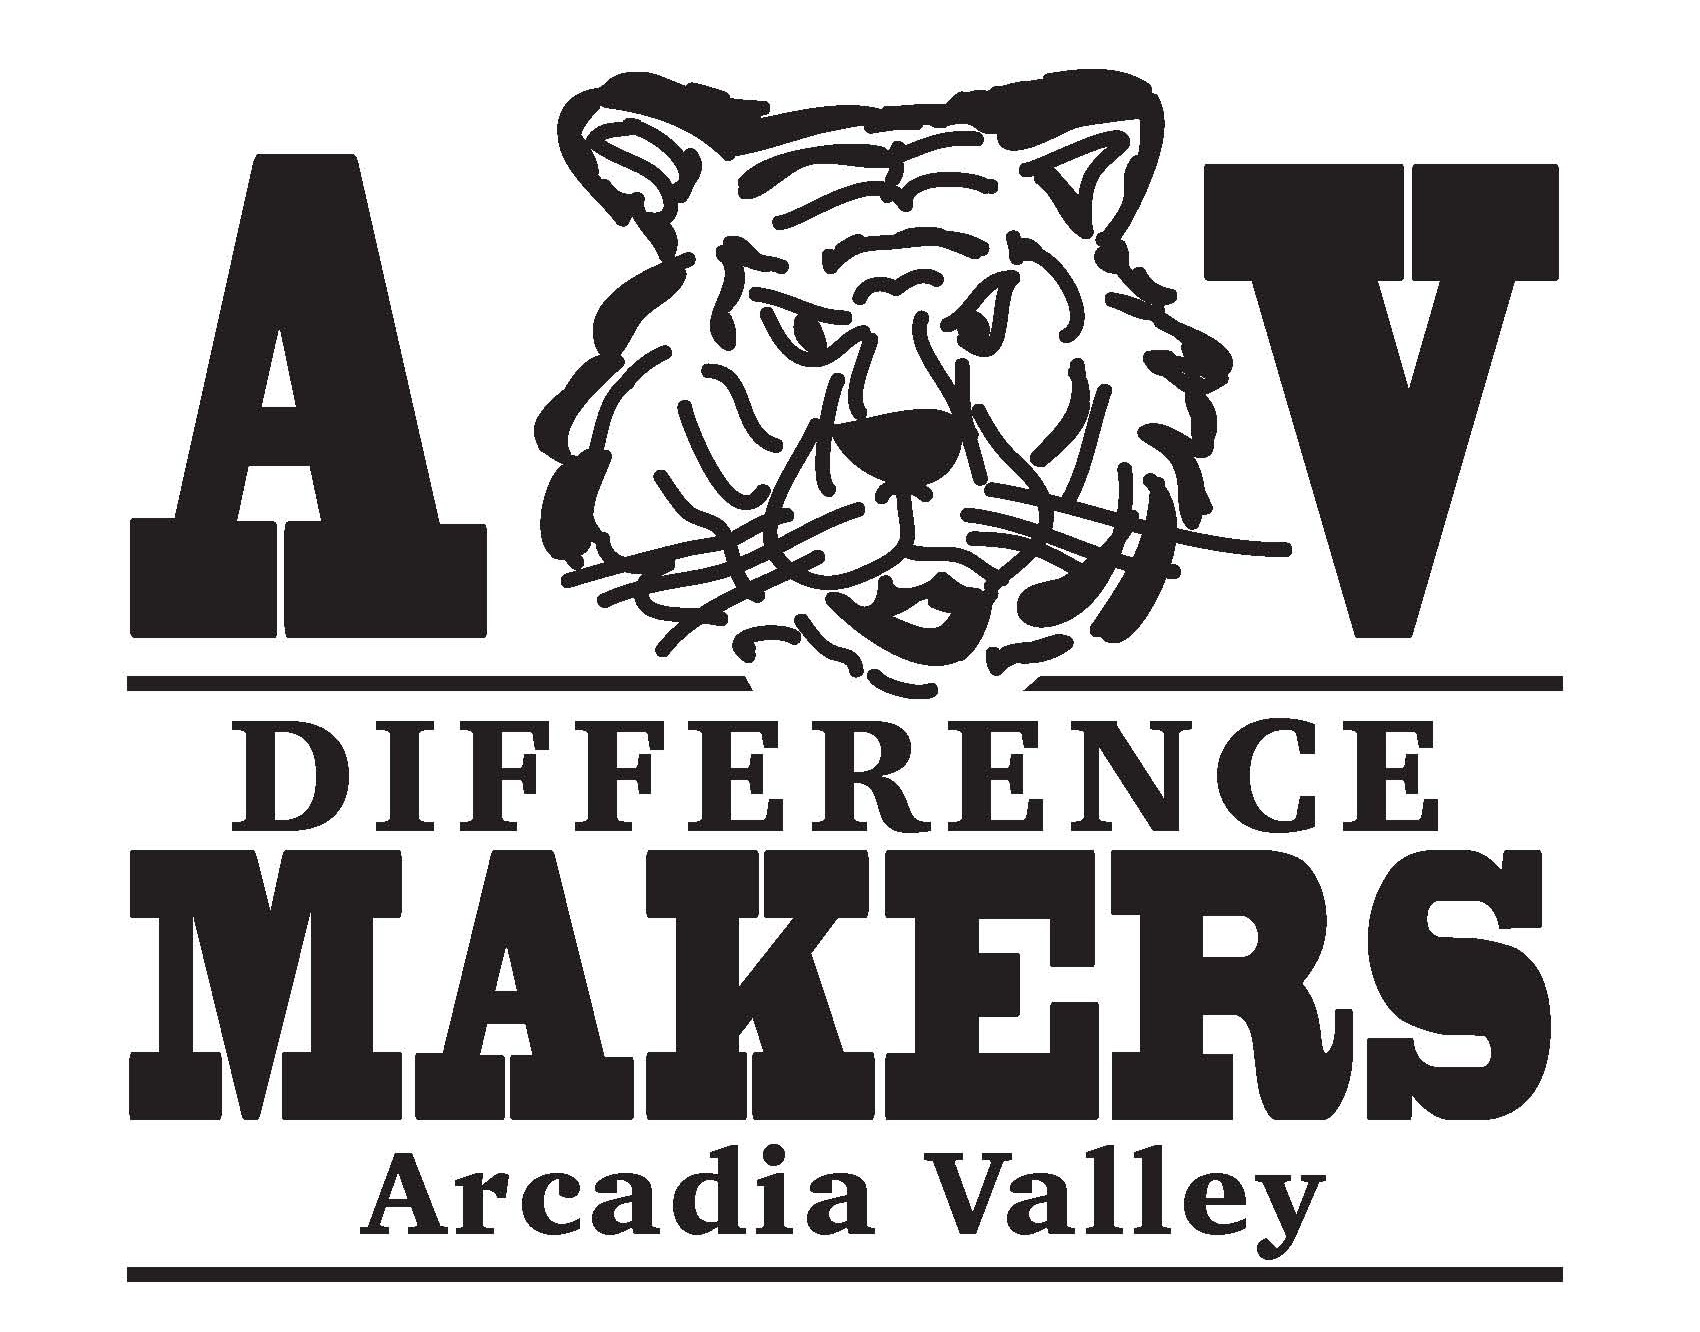 DIFFERENCE MAKERS logo